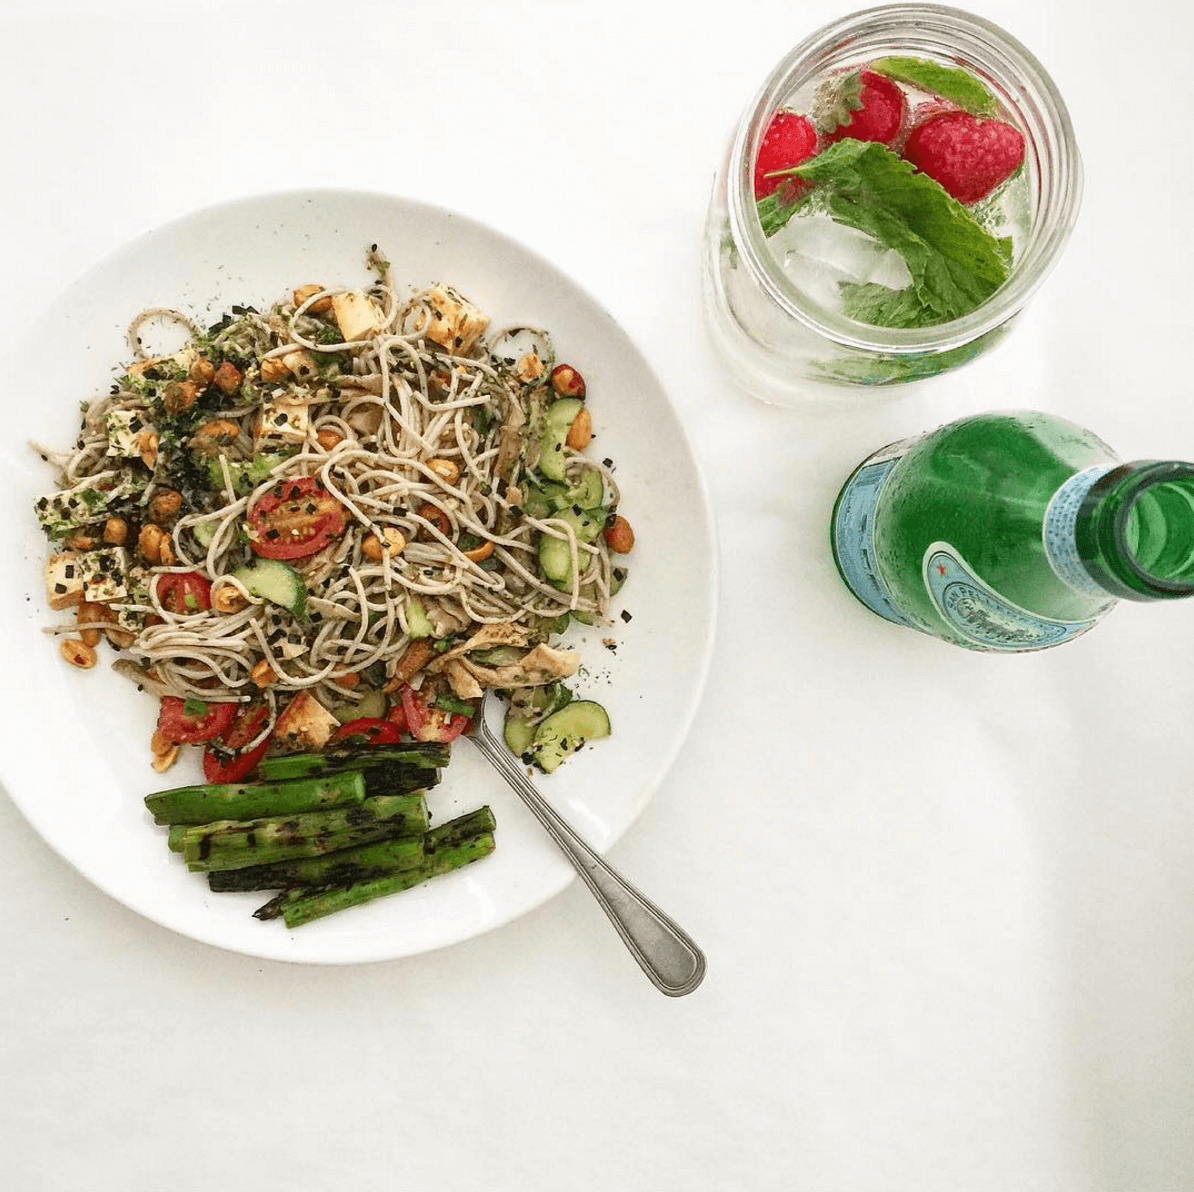 Shop Specialties Munchery Home Food Delivery Salad and Drink